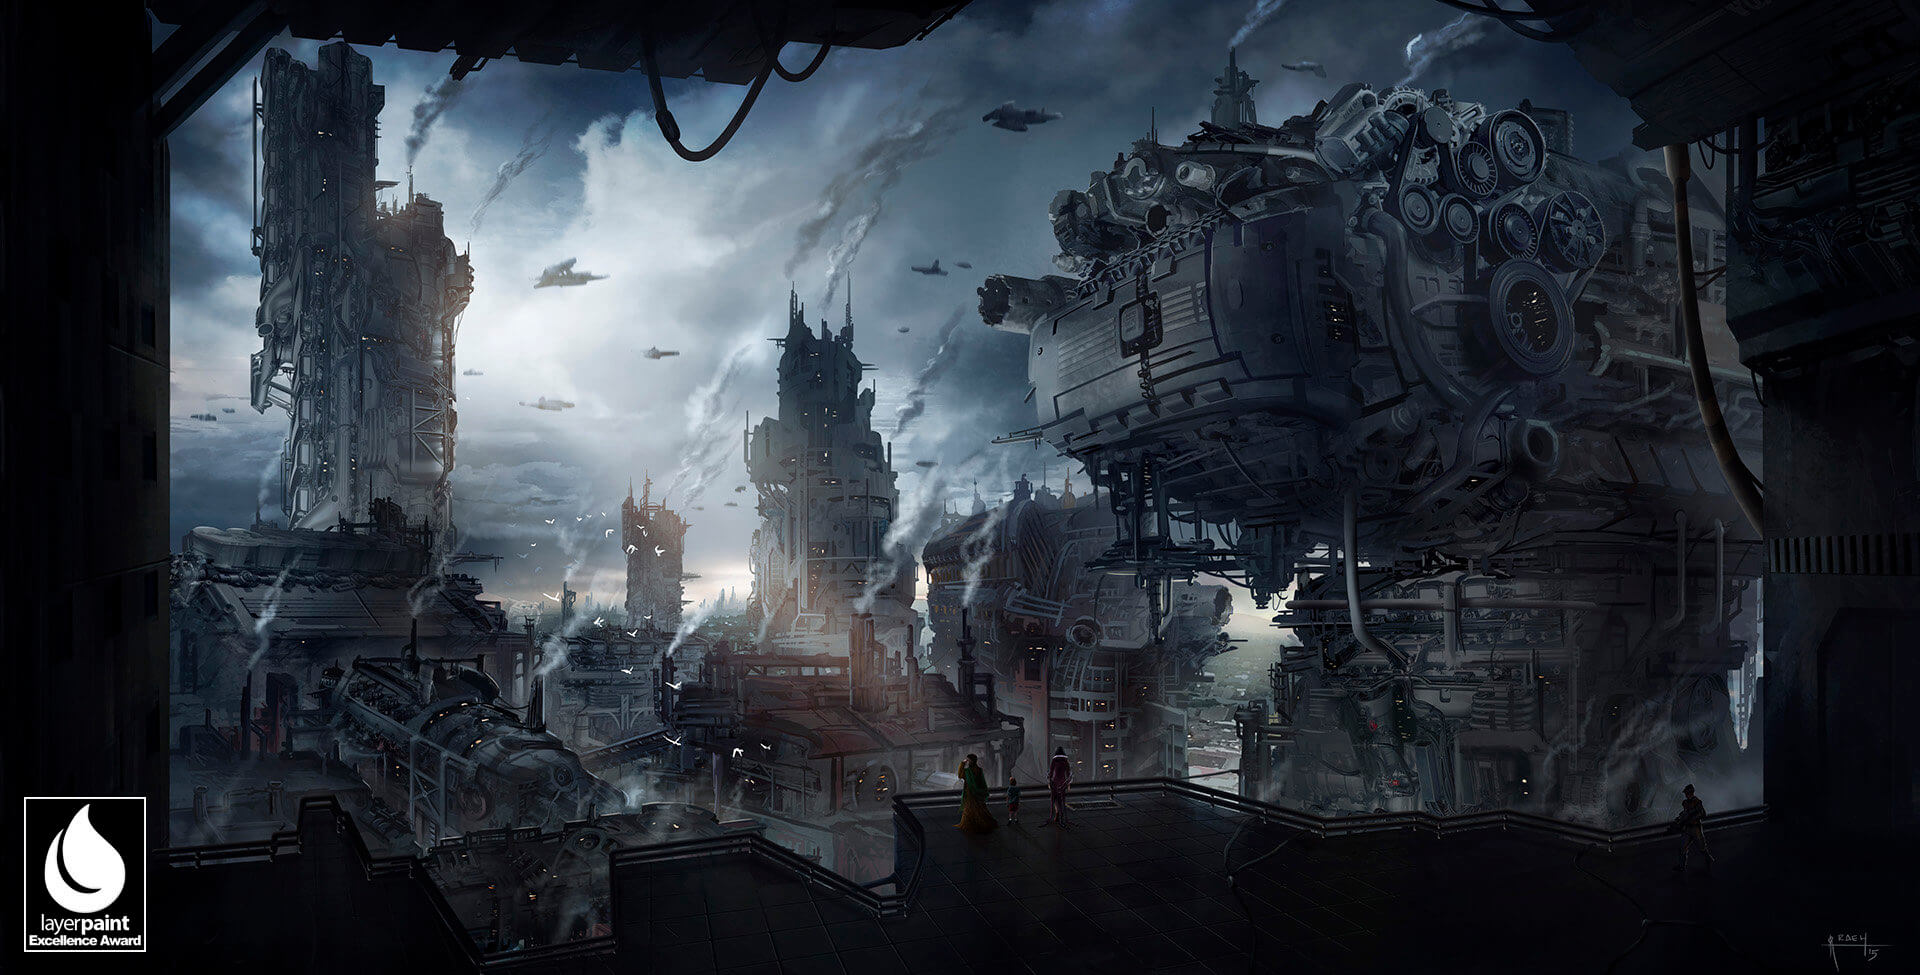 Once upon a time in the Steampunk City by Ricardo Echeverry